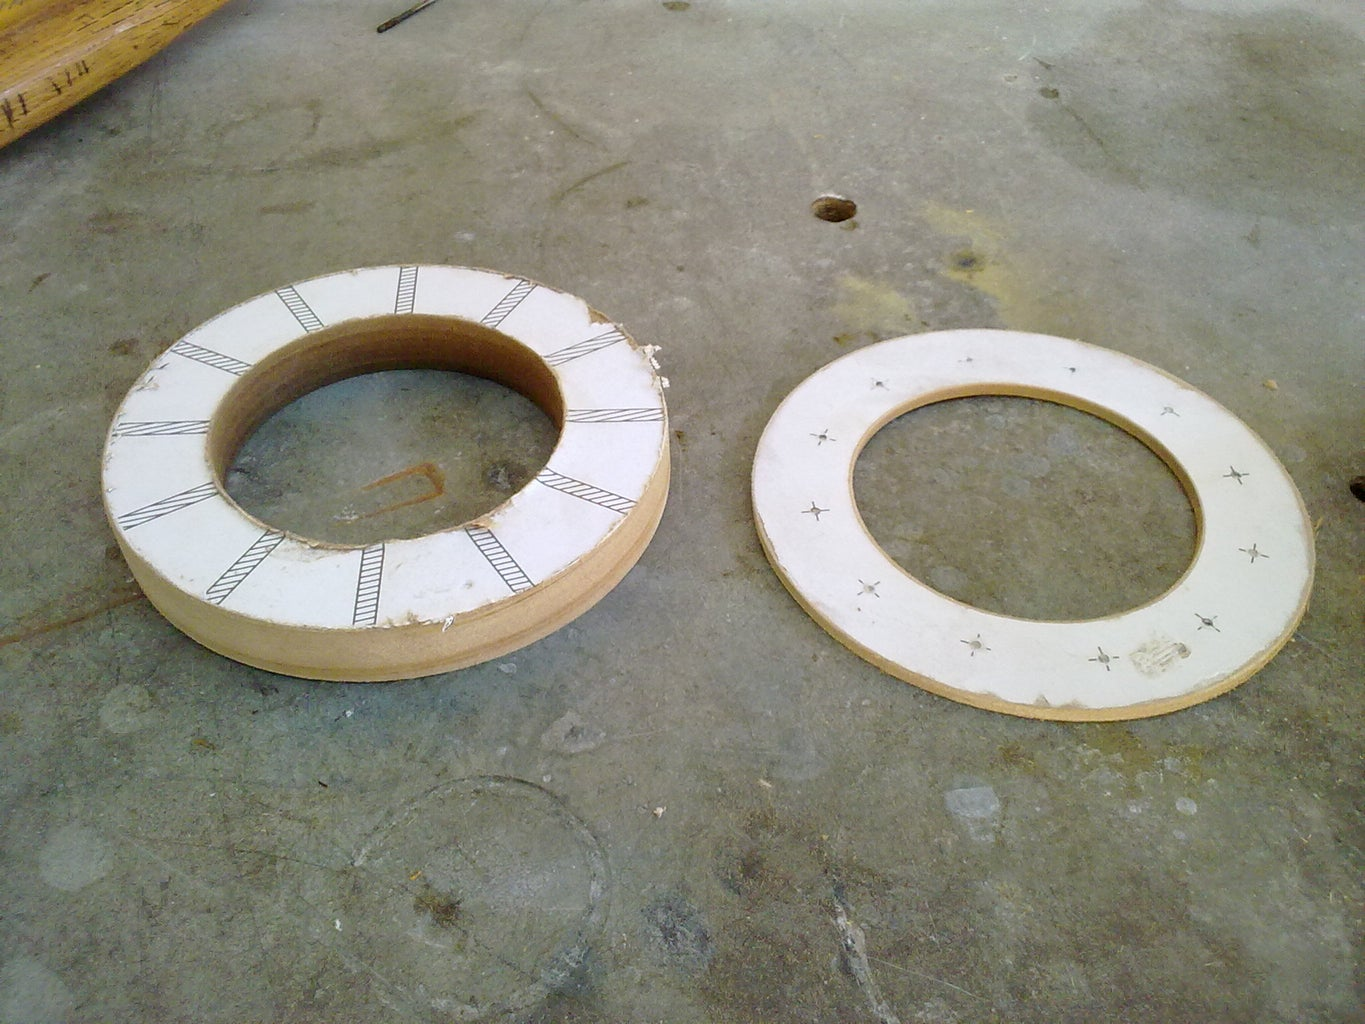 Making the Rings